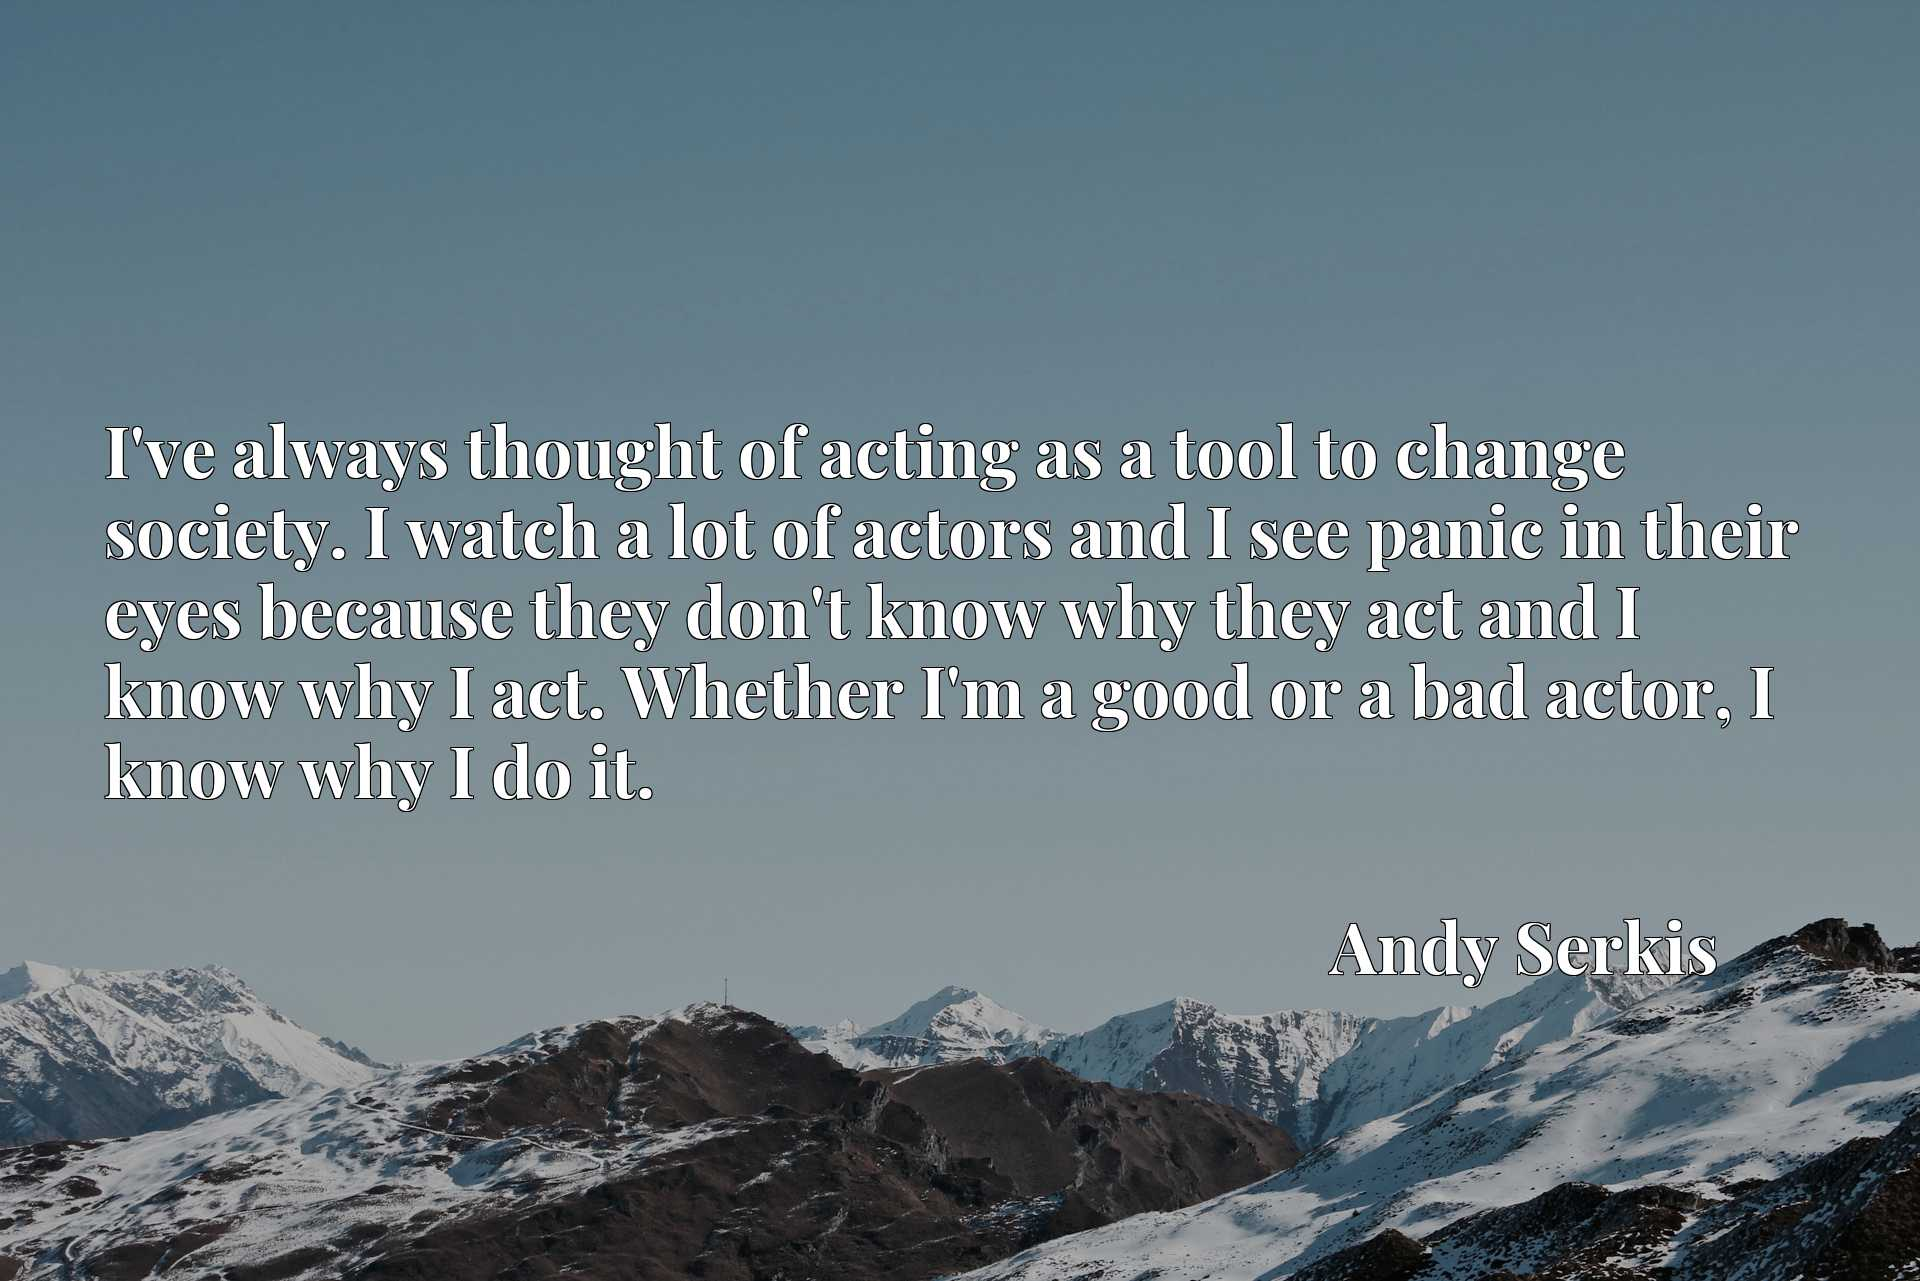 I've always thought of acting as a tool to change society. I watch a lot of actors and I see panic in their eyes because they don't know why they act and I know why I act. Whether I'm a good or a bad actor, I know why I do it.